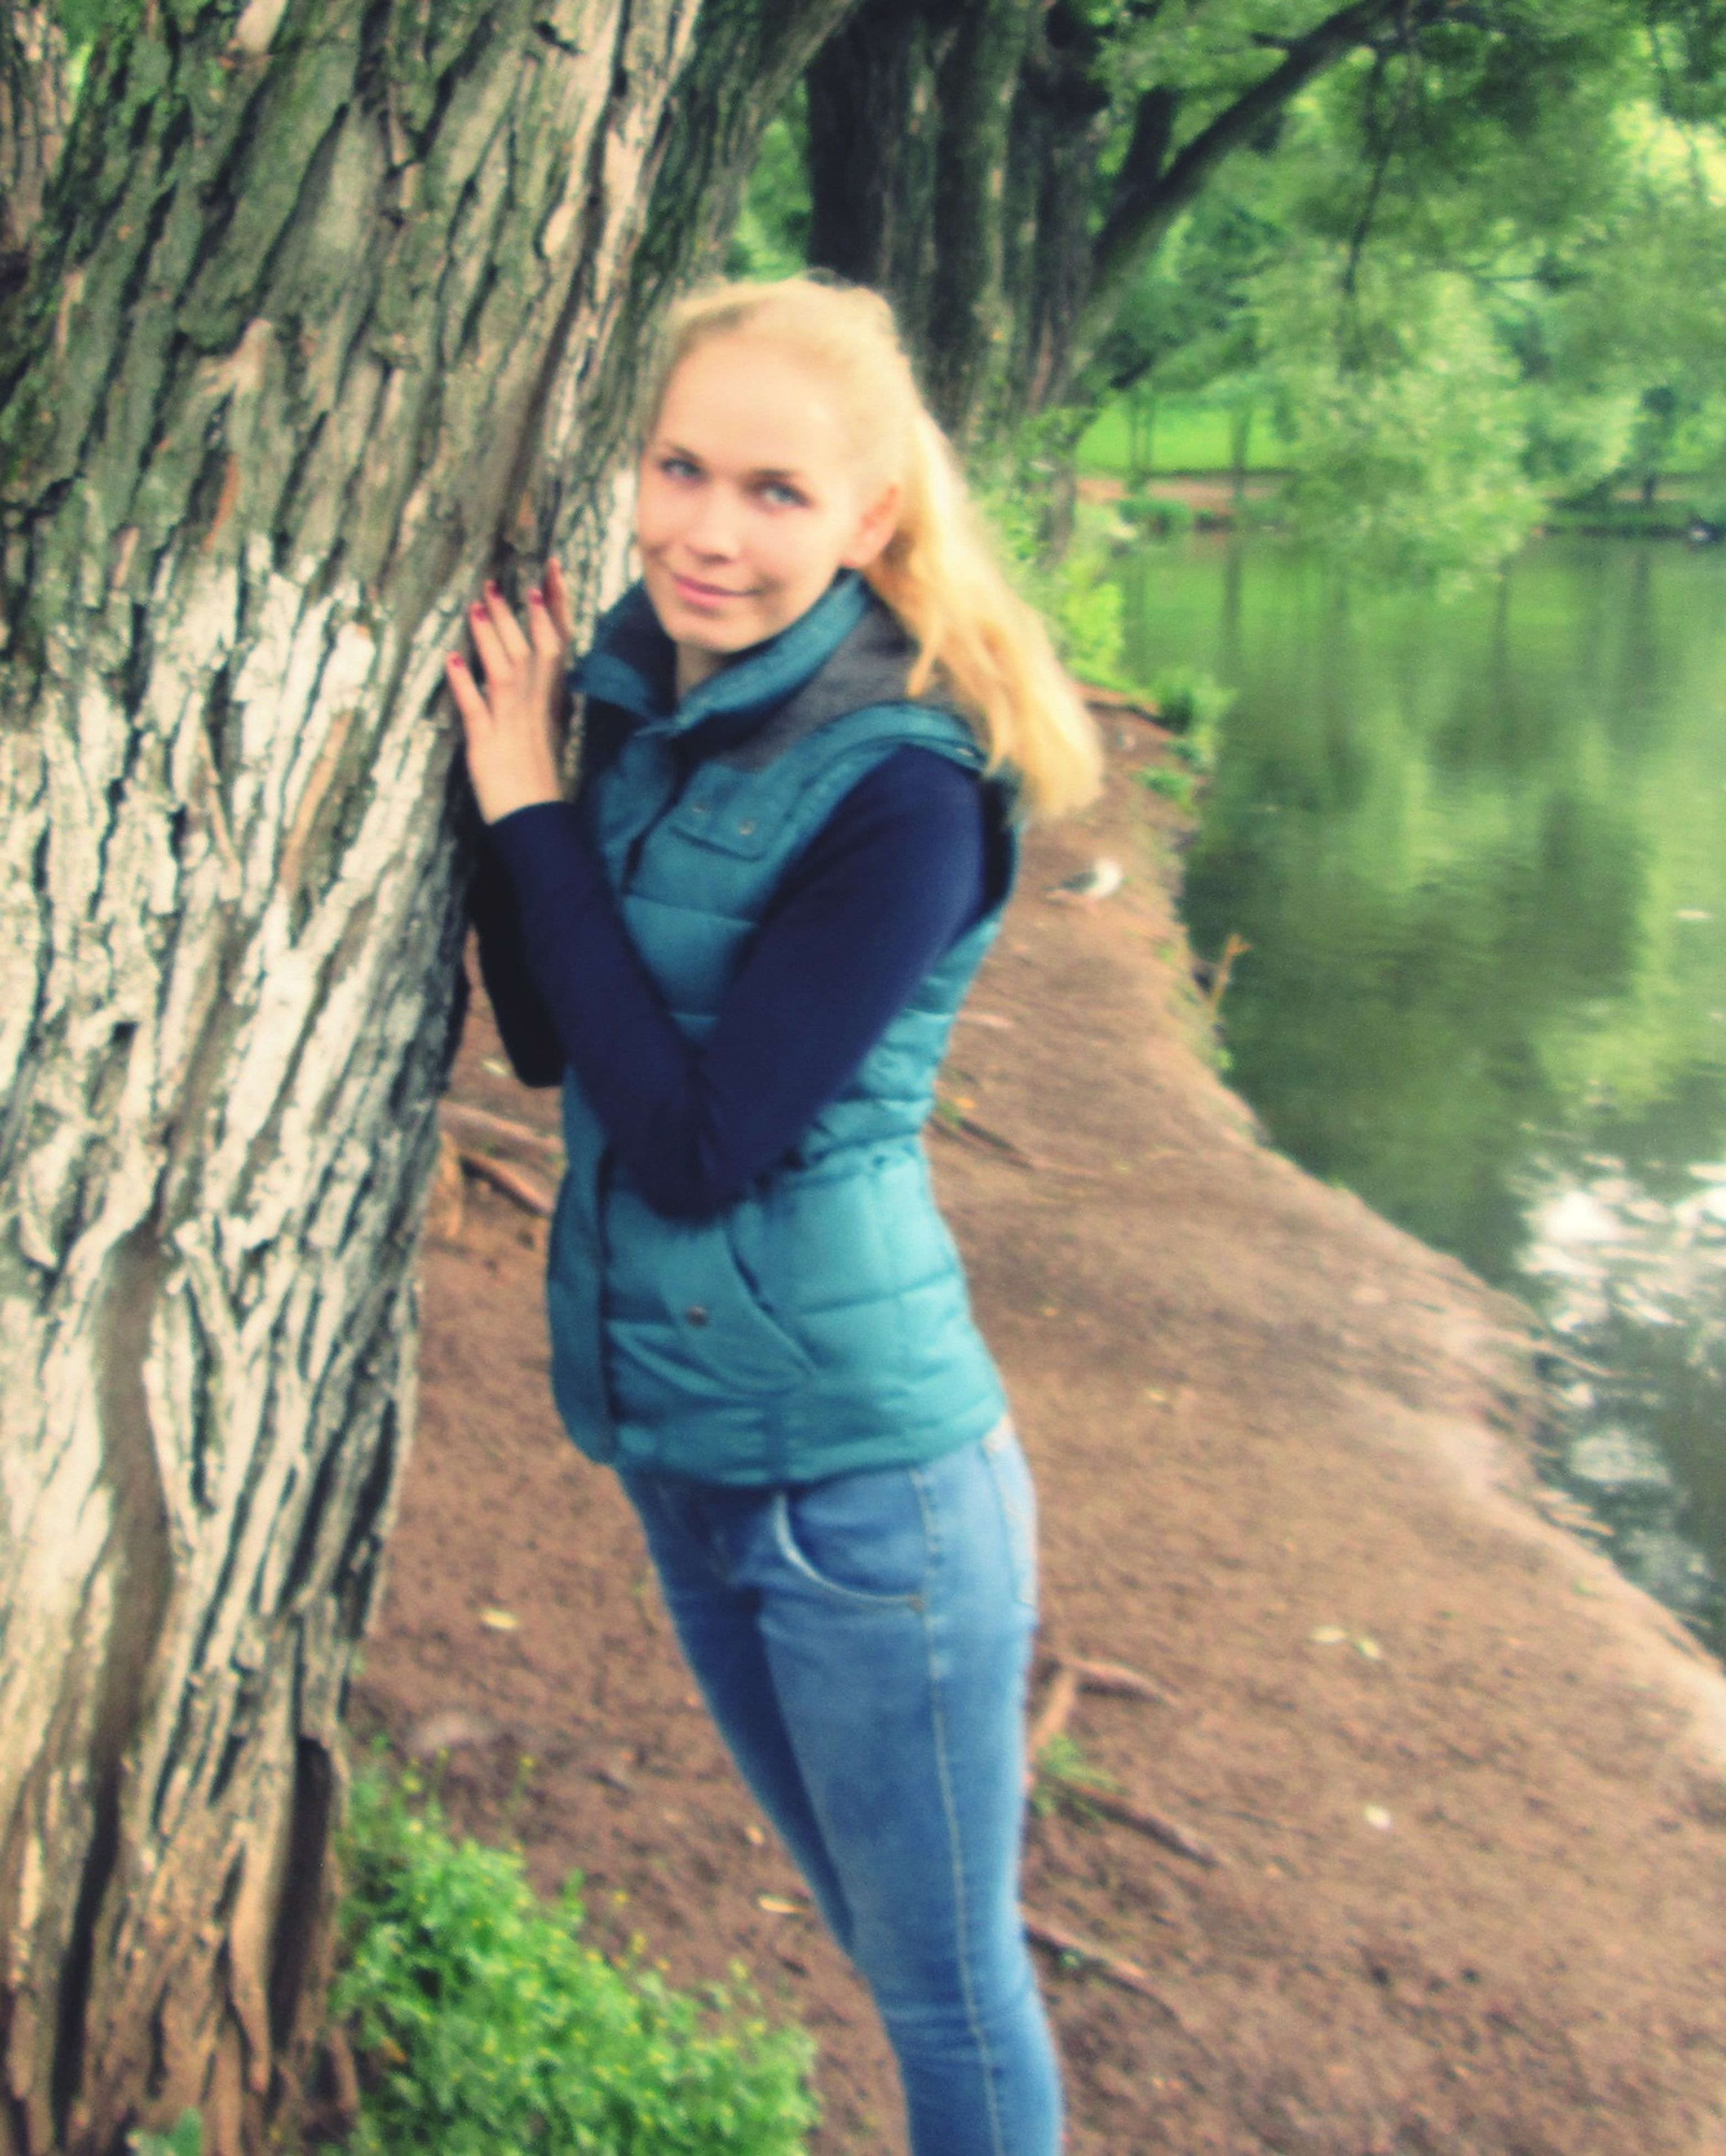 casual clothing, person, tree, lifestyles, standing, leisure activity, forest, young adult, portrait, looking at camera, three quarter length, front view, full length, smiling, tree trunk, nature, happiness, outdoors